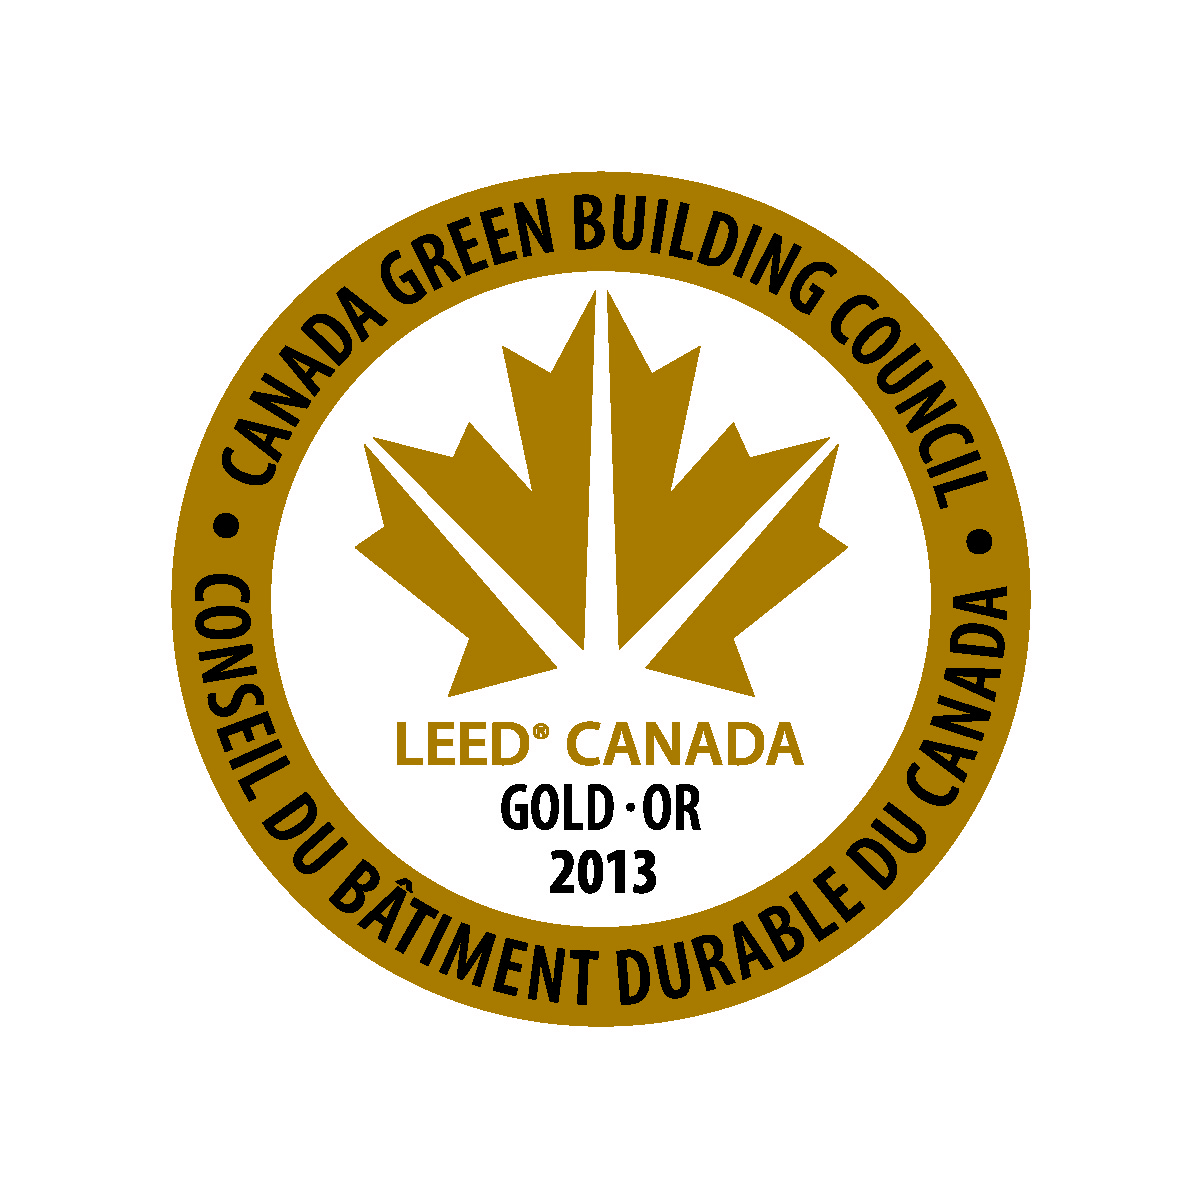 Efficiency engineering inc cara operations awarded leed gold congratulations to cara operations for achieving leed gold certification xflitez Choice Image